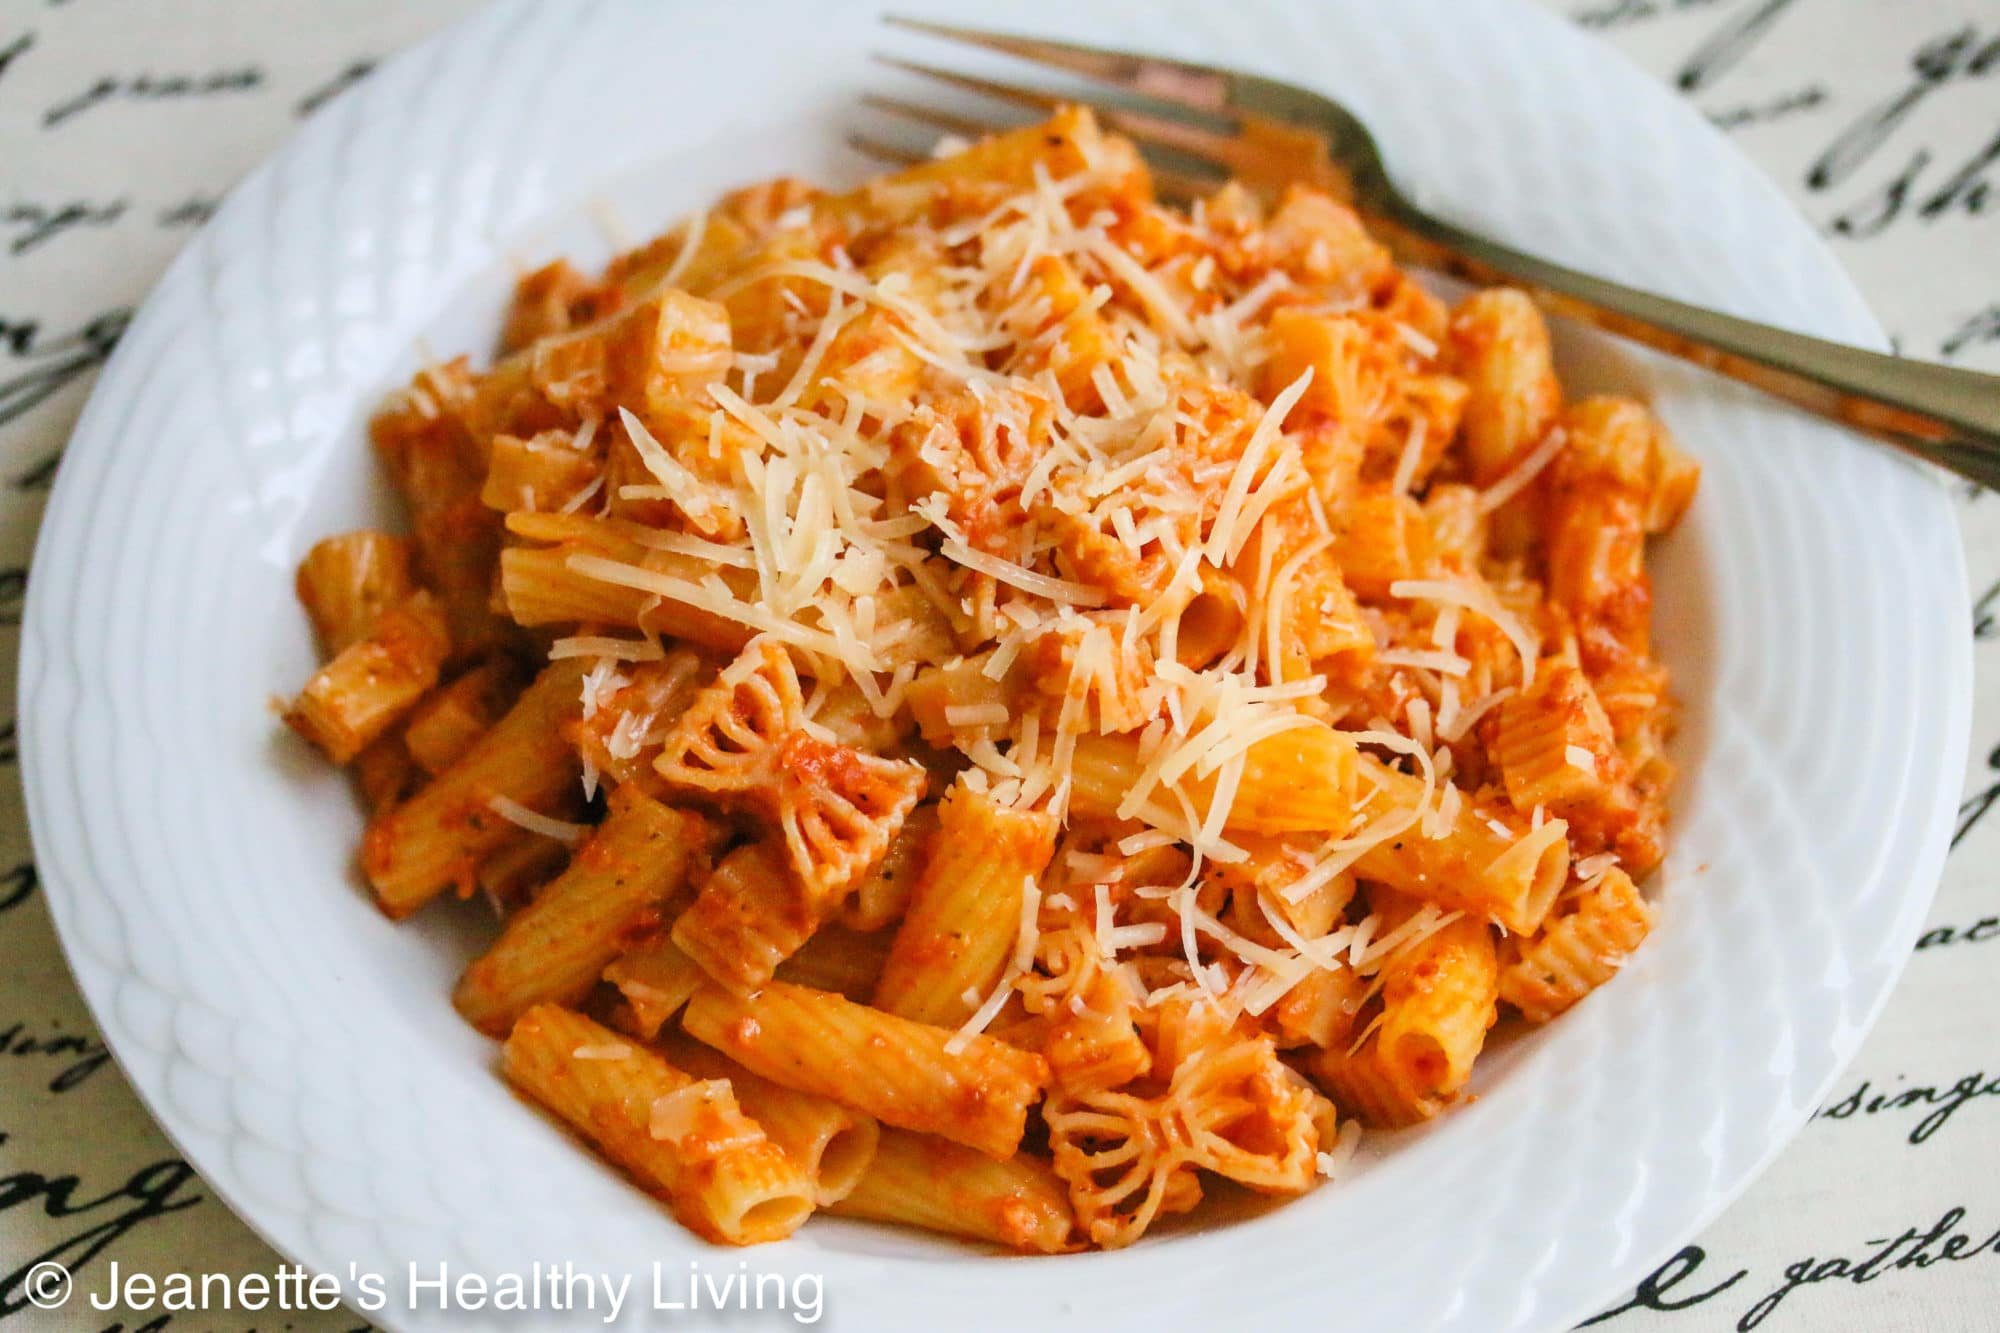 Oven Roasted Tomato Pesto Recipe - Jeanette's Healthy Living